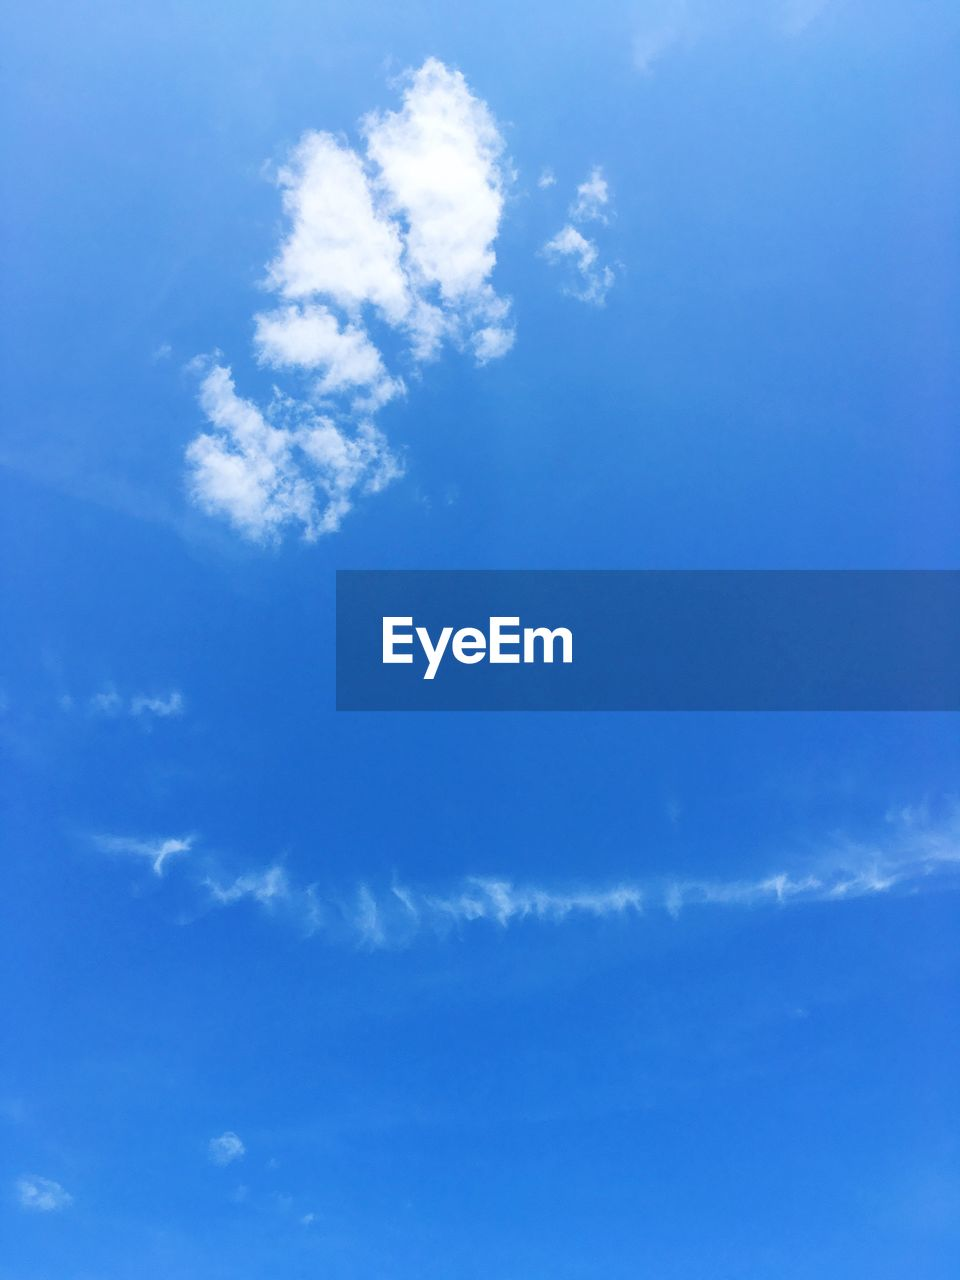 sky, blue, cloud - sky, beauty in nature, sky only, nature, low angle view, backgrounds, scenics, day, cirrus, tranquil scene, no people, tranquility, outdoors